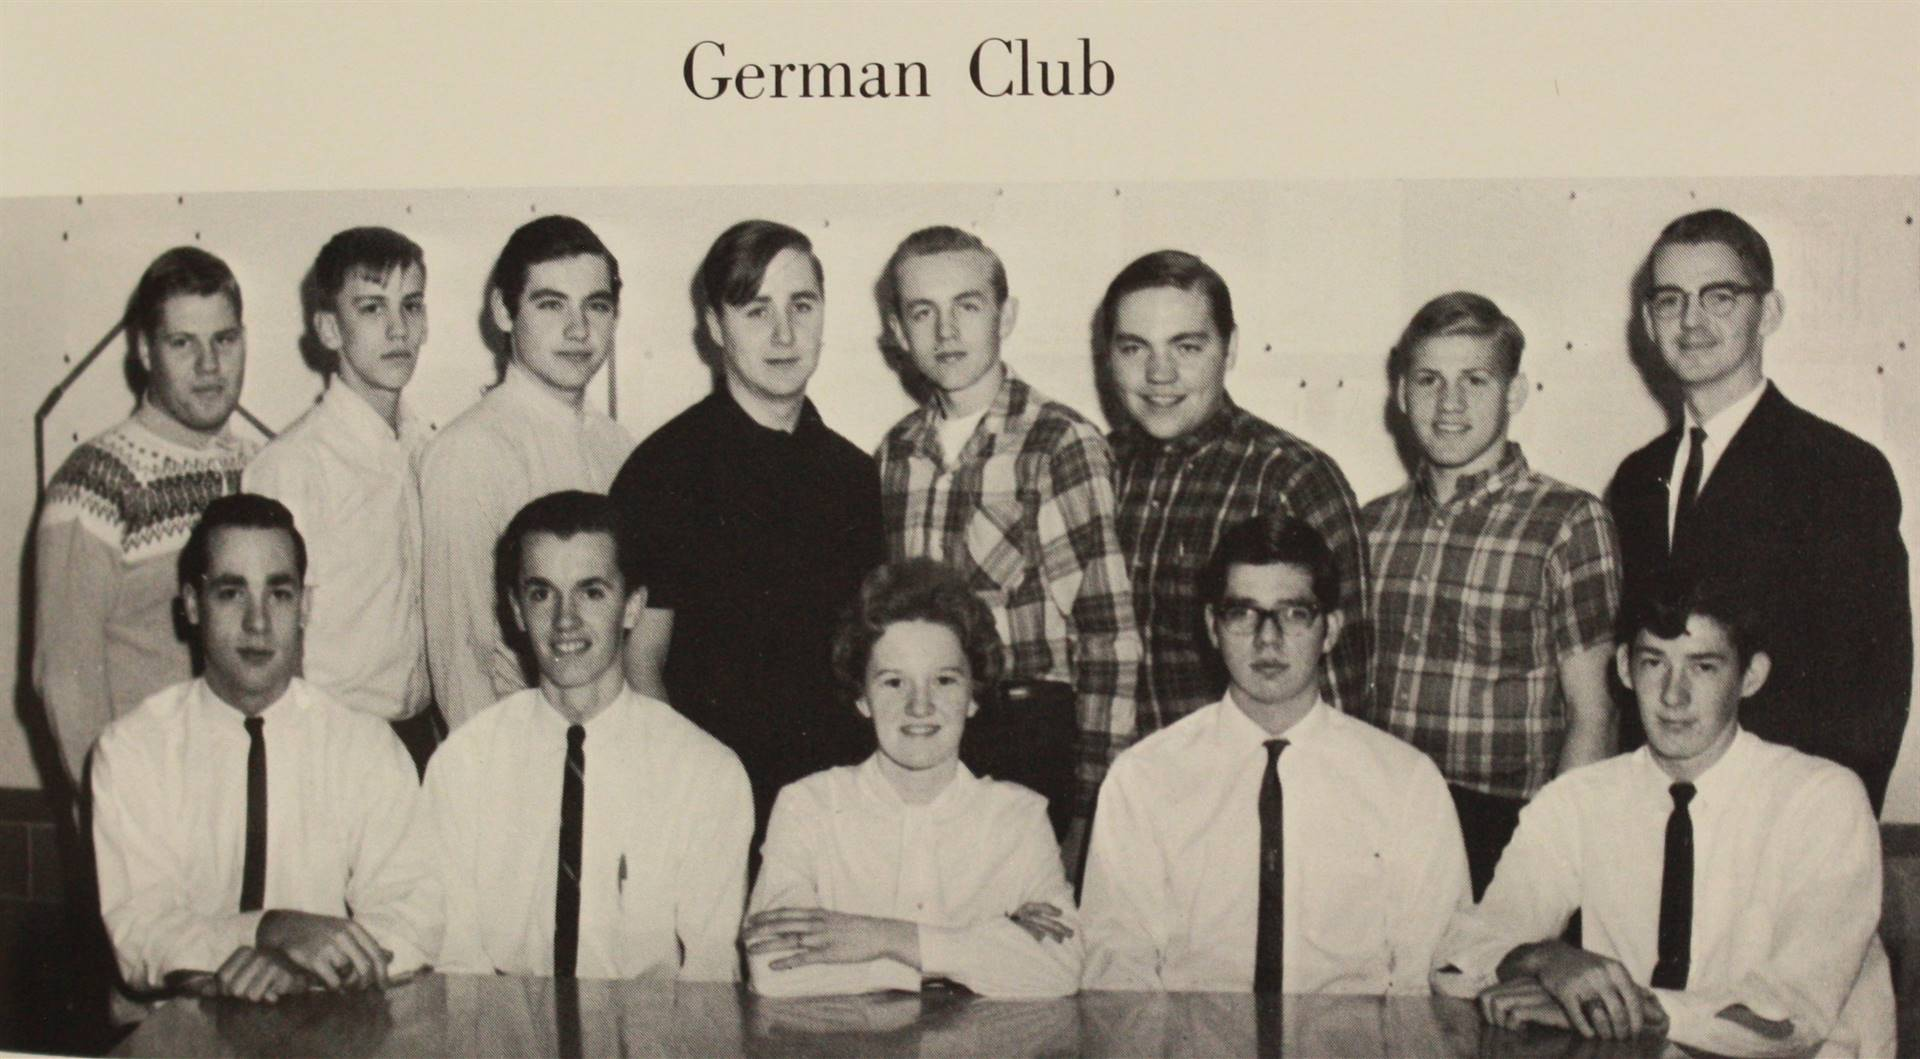 1966 German Club